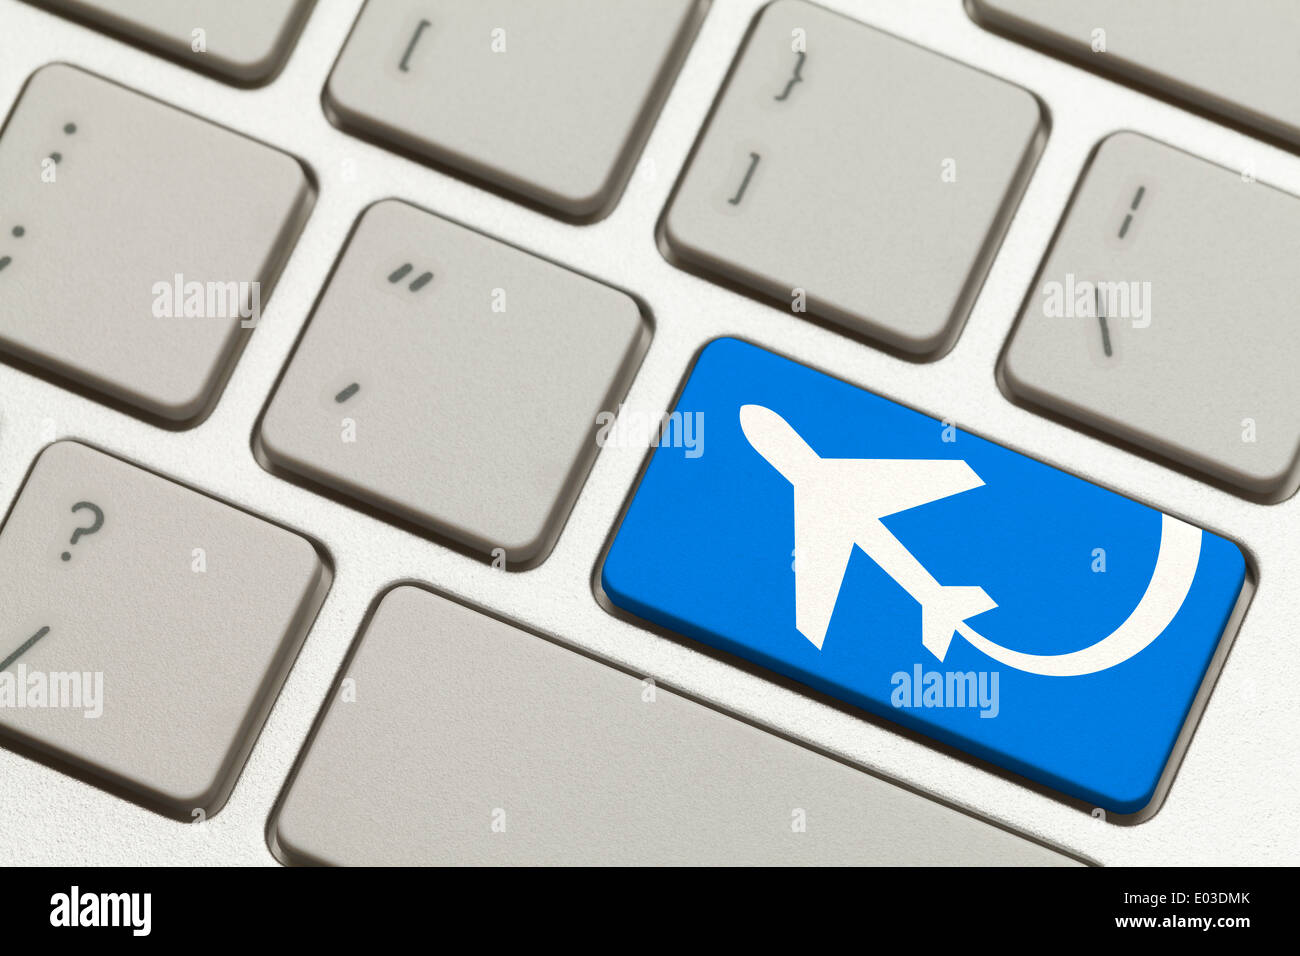 Close Up of Blue Key with Airplane on Keyboard. - Stock Image